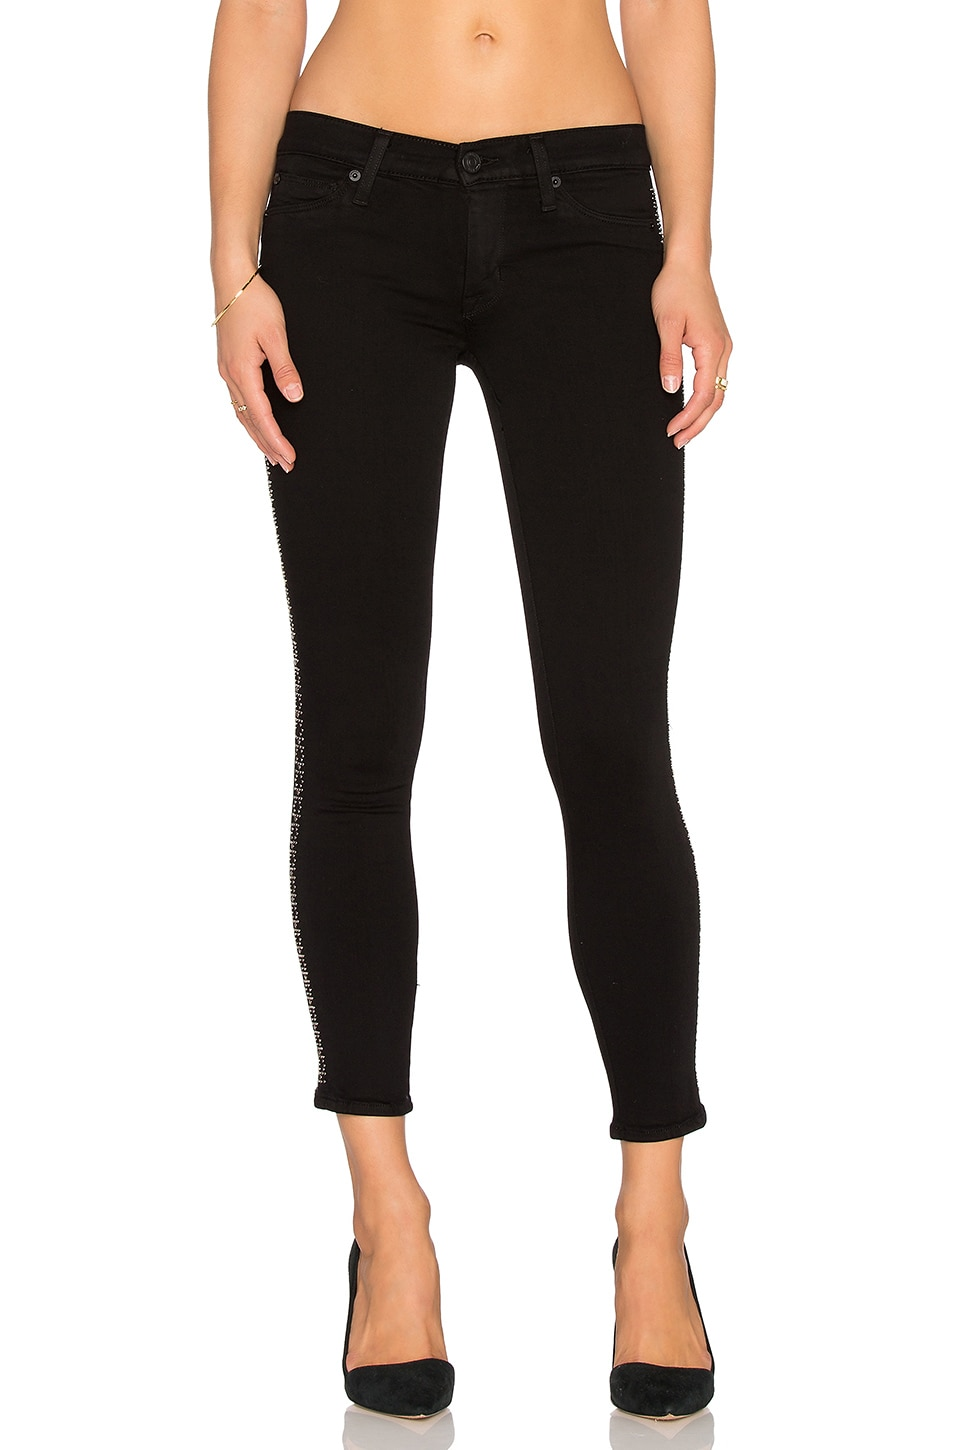 Luna Midrise Skinny Ankle at Revolve Clothing